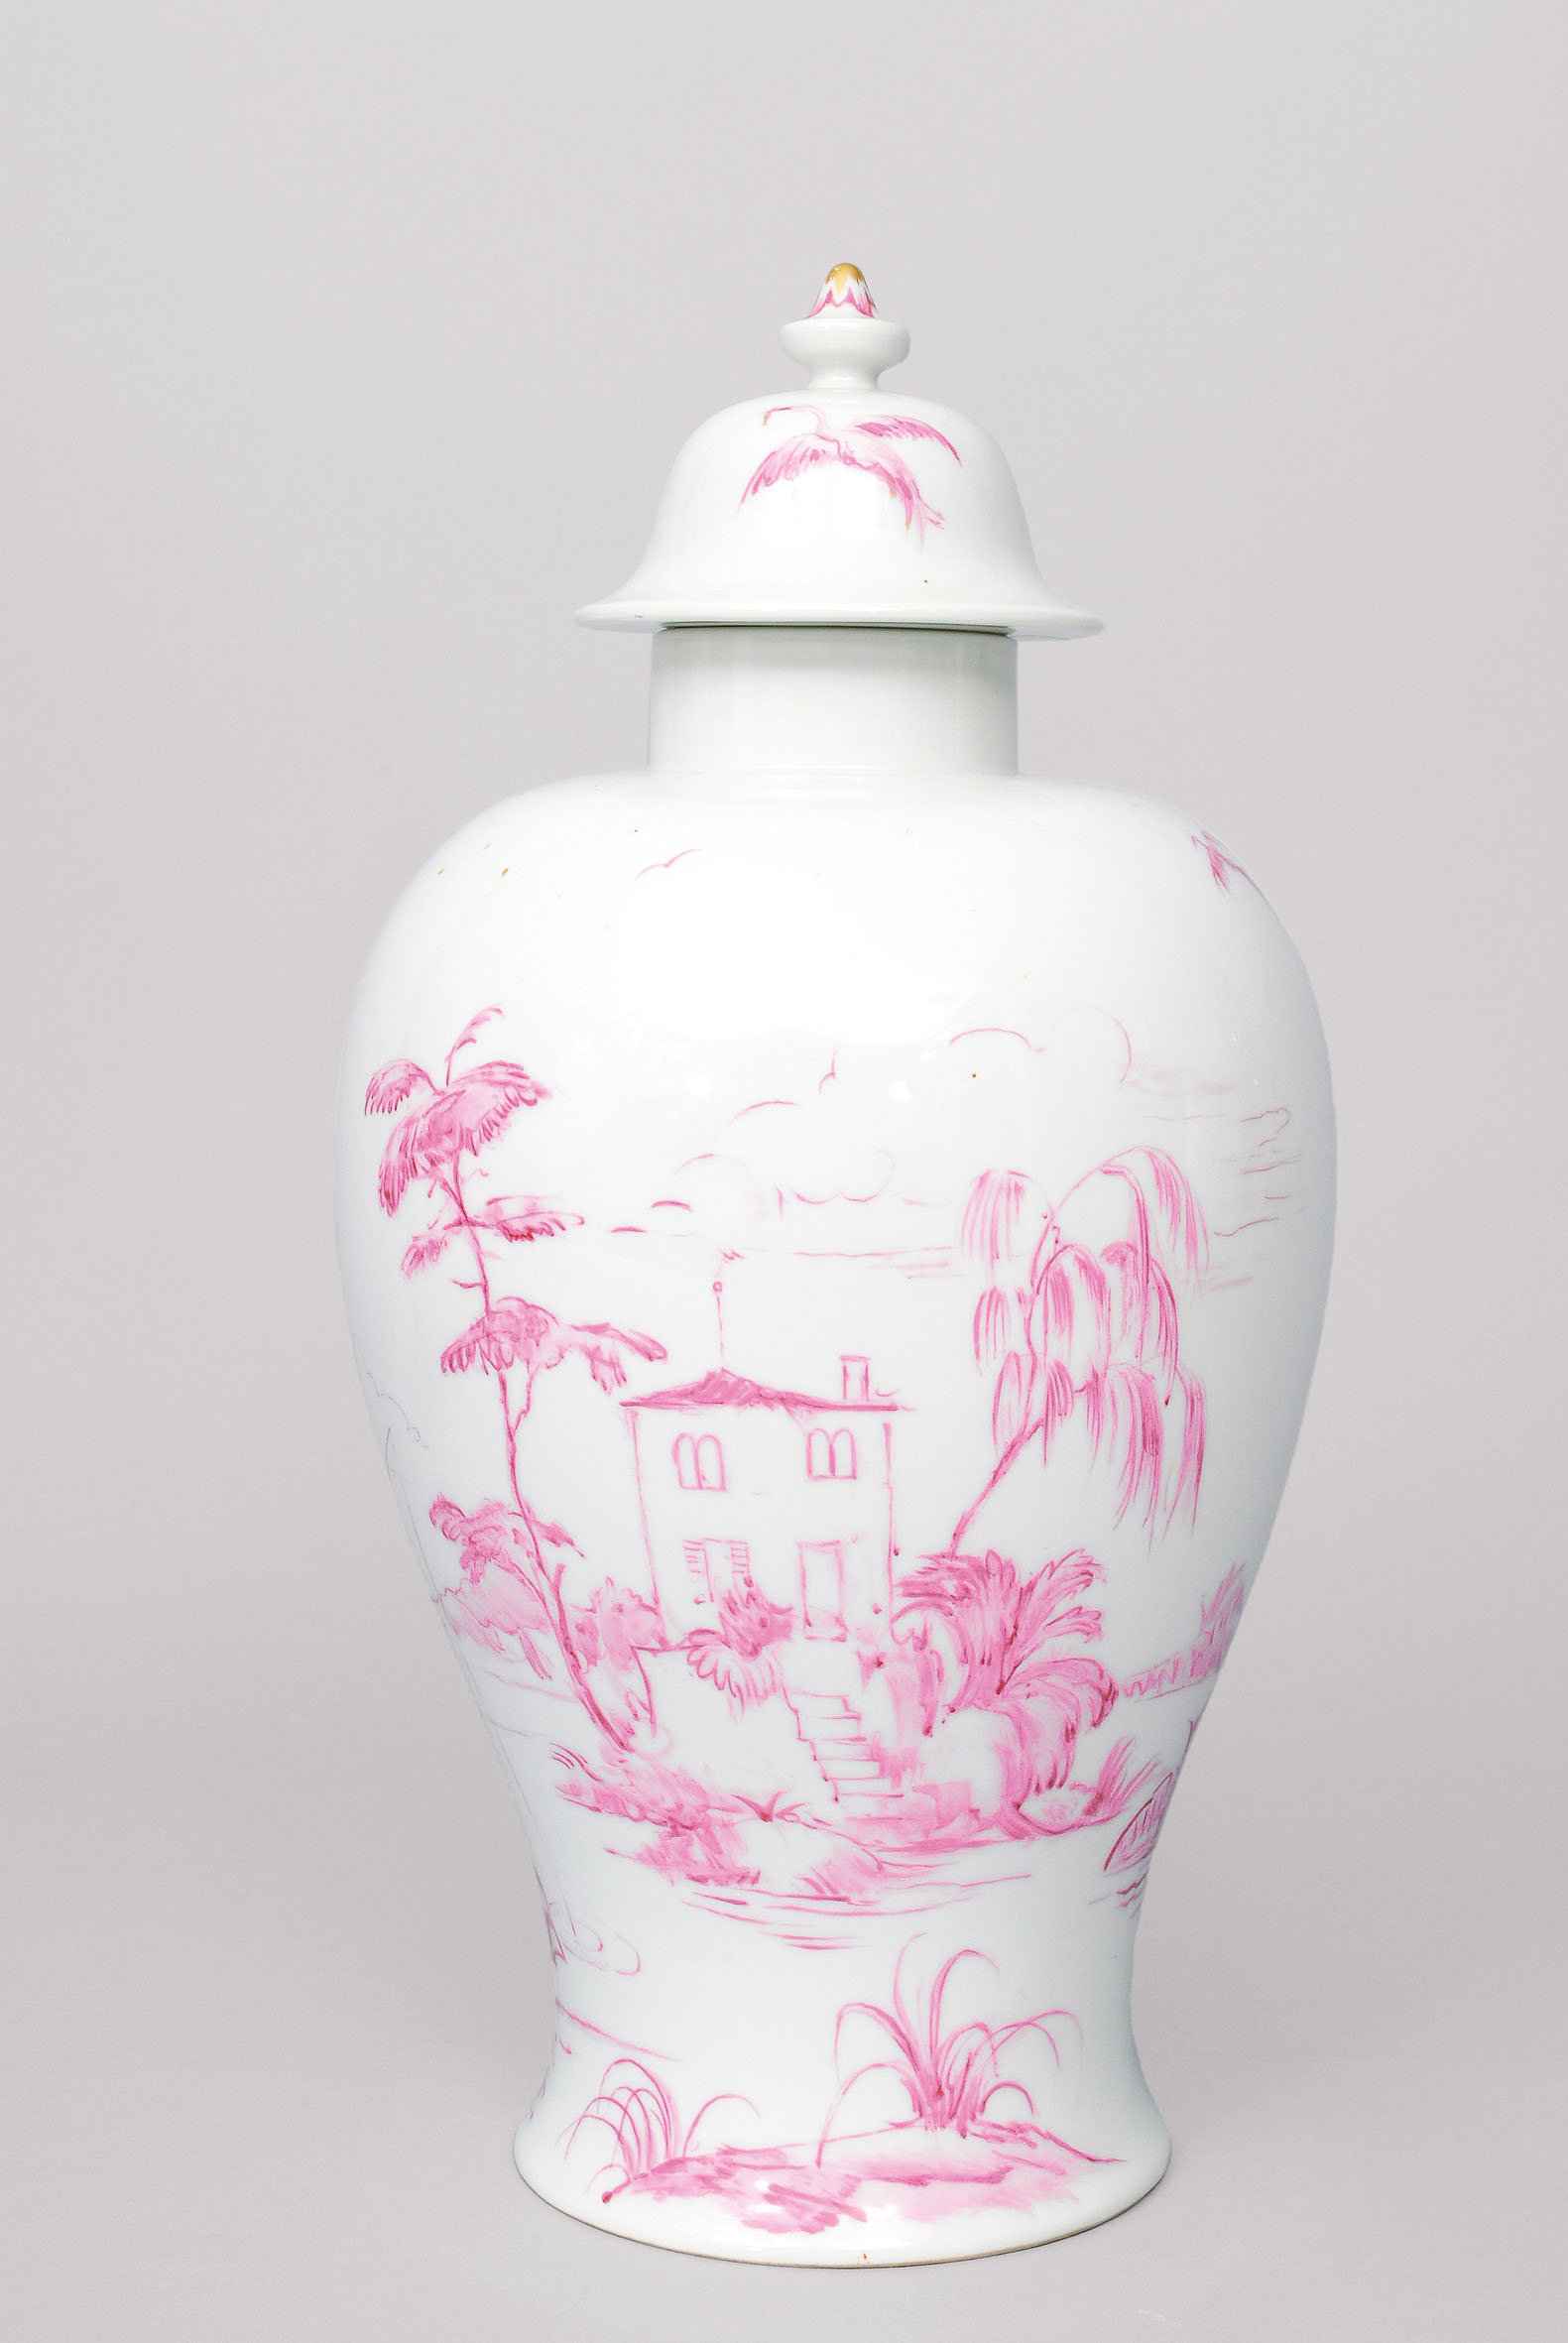 Vase with cover and landscape in purpur